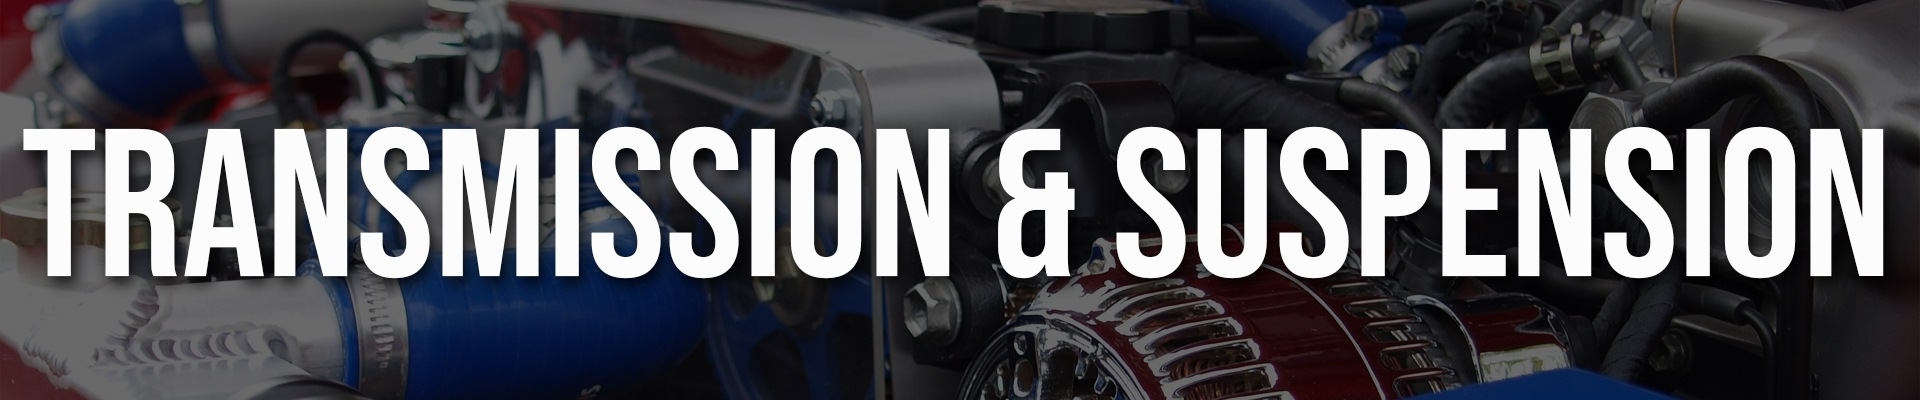 Transmission & Suspension Banner